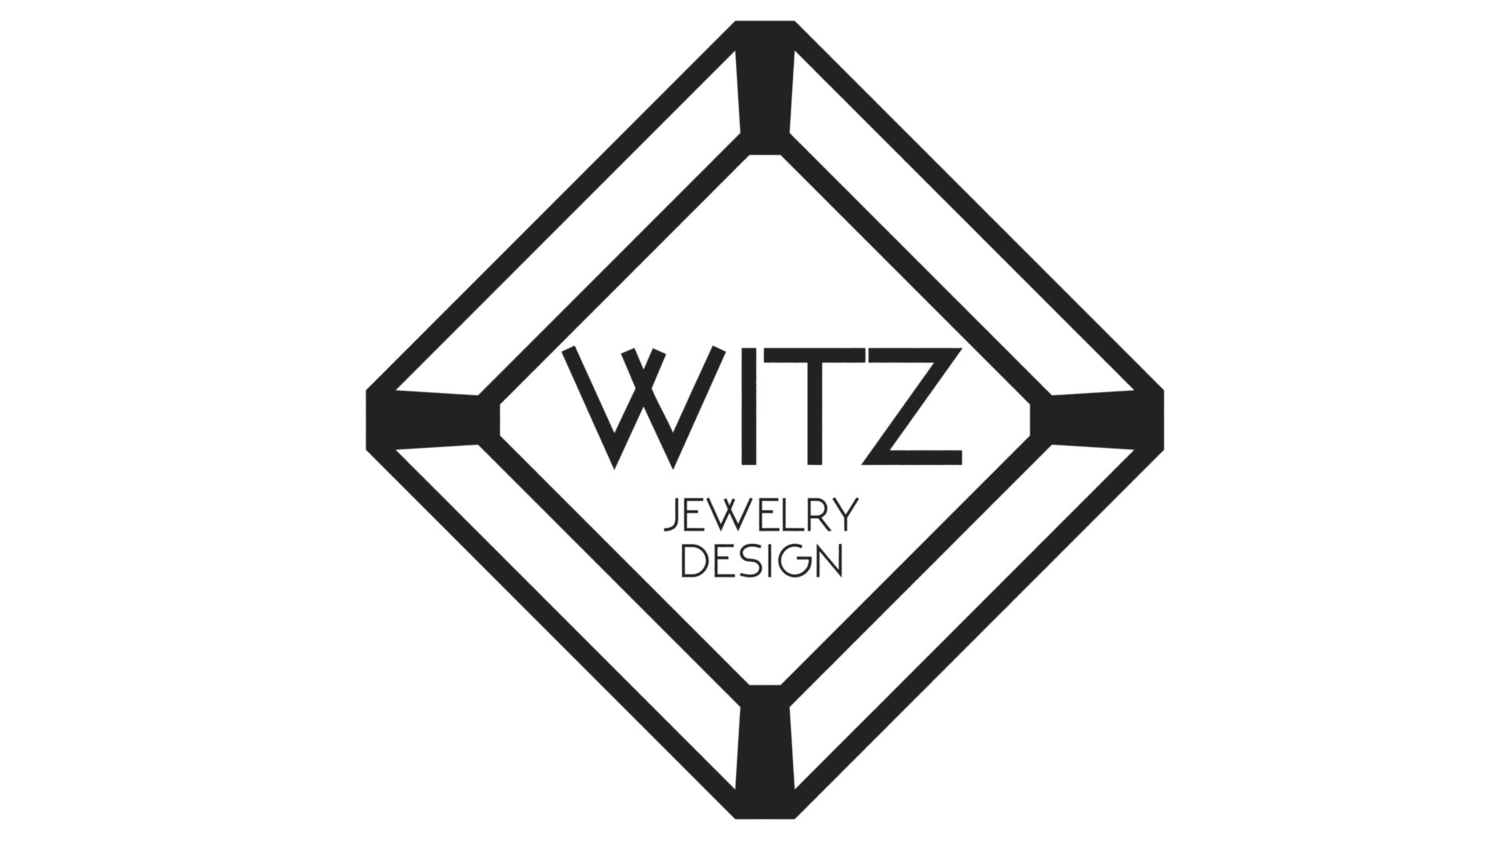 Witz Jewelry Design